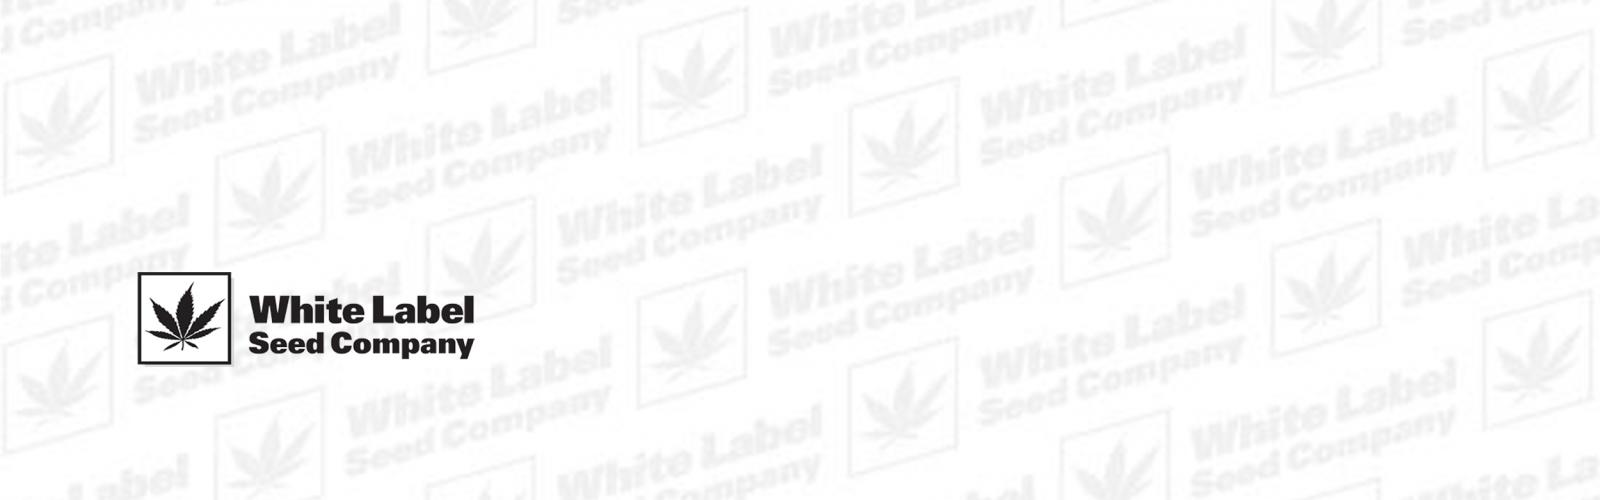 Graines de Cannabis Féminisées de White Label Seeds